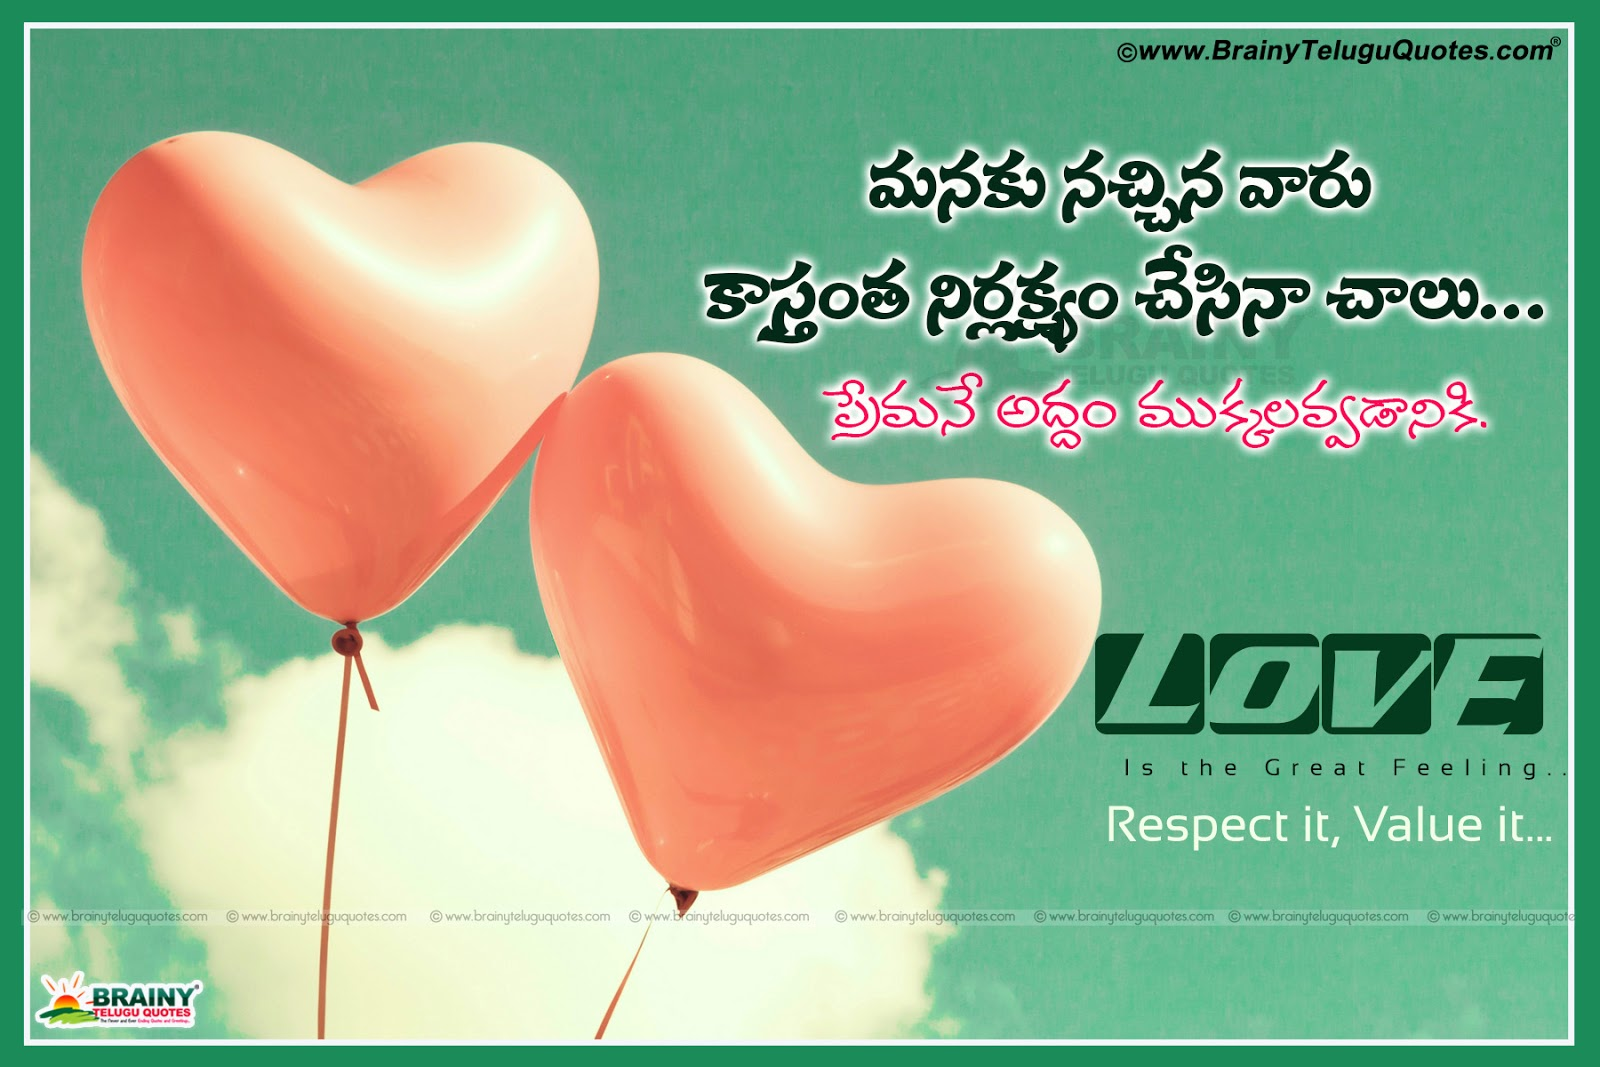 Heart Touching Telugu Love Feelings Love Quotes Images With Hearts Hd Wallpapers Brainyteluguquotes Comtelugu Quotes English Quotes Hindi Quotes Tamil Quotes Greetings